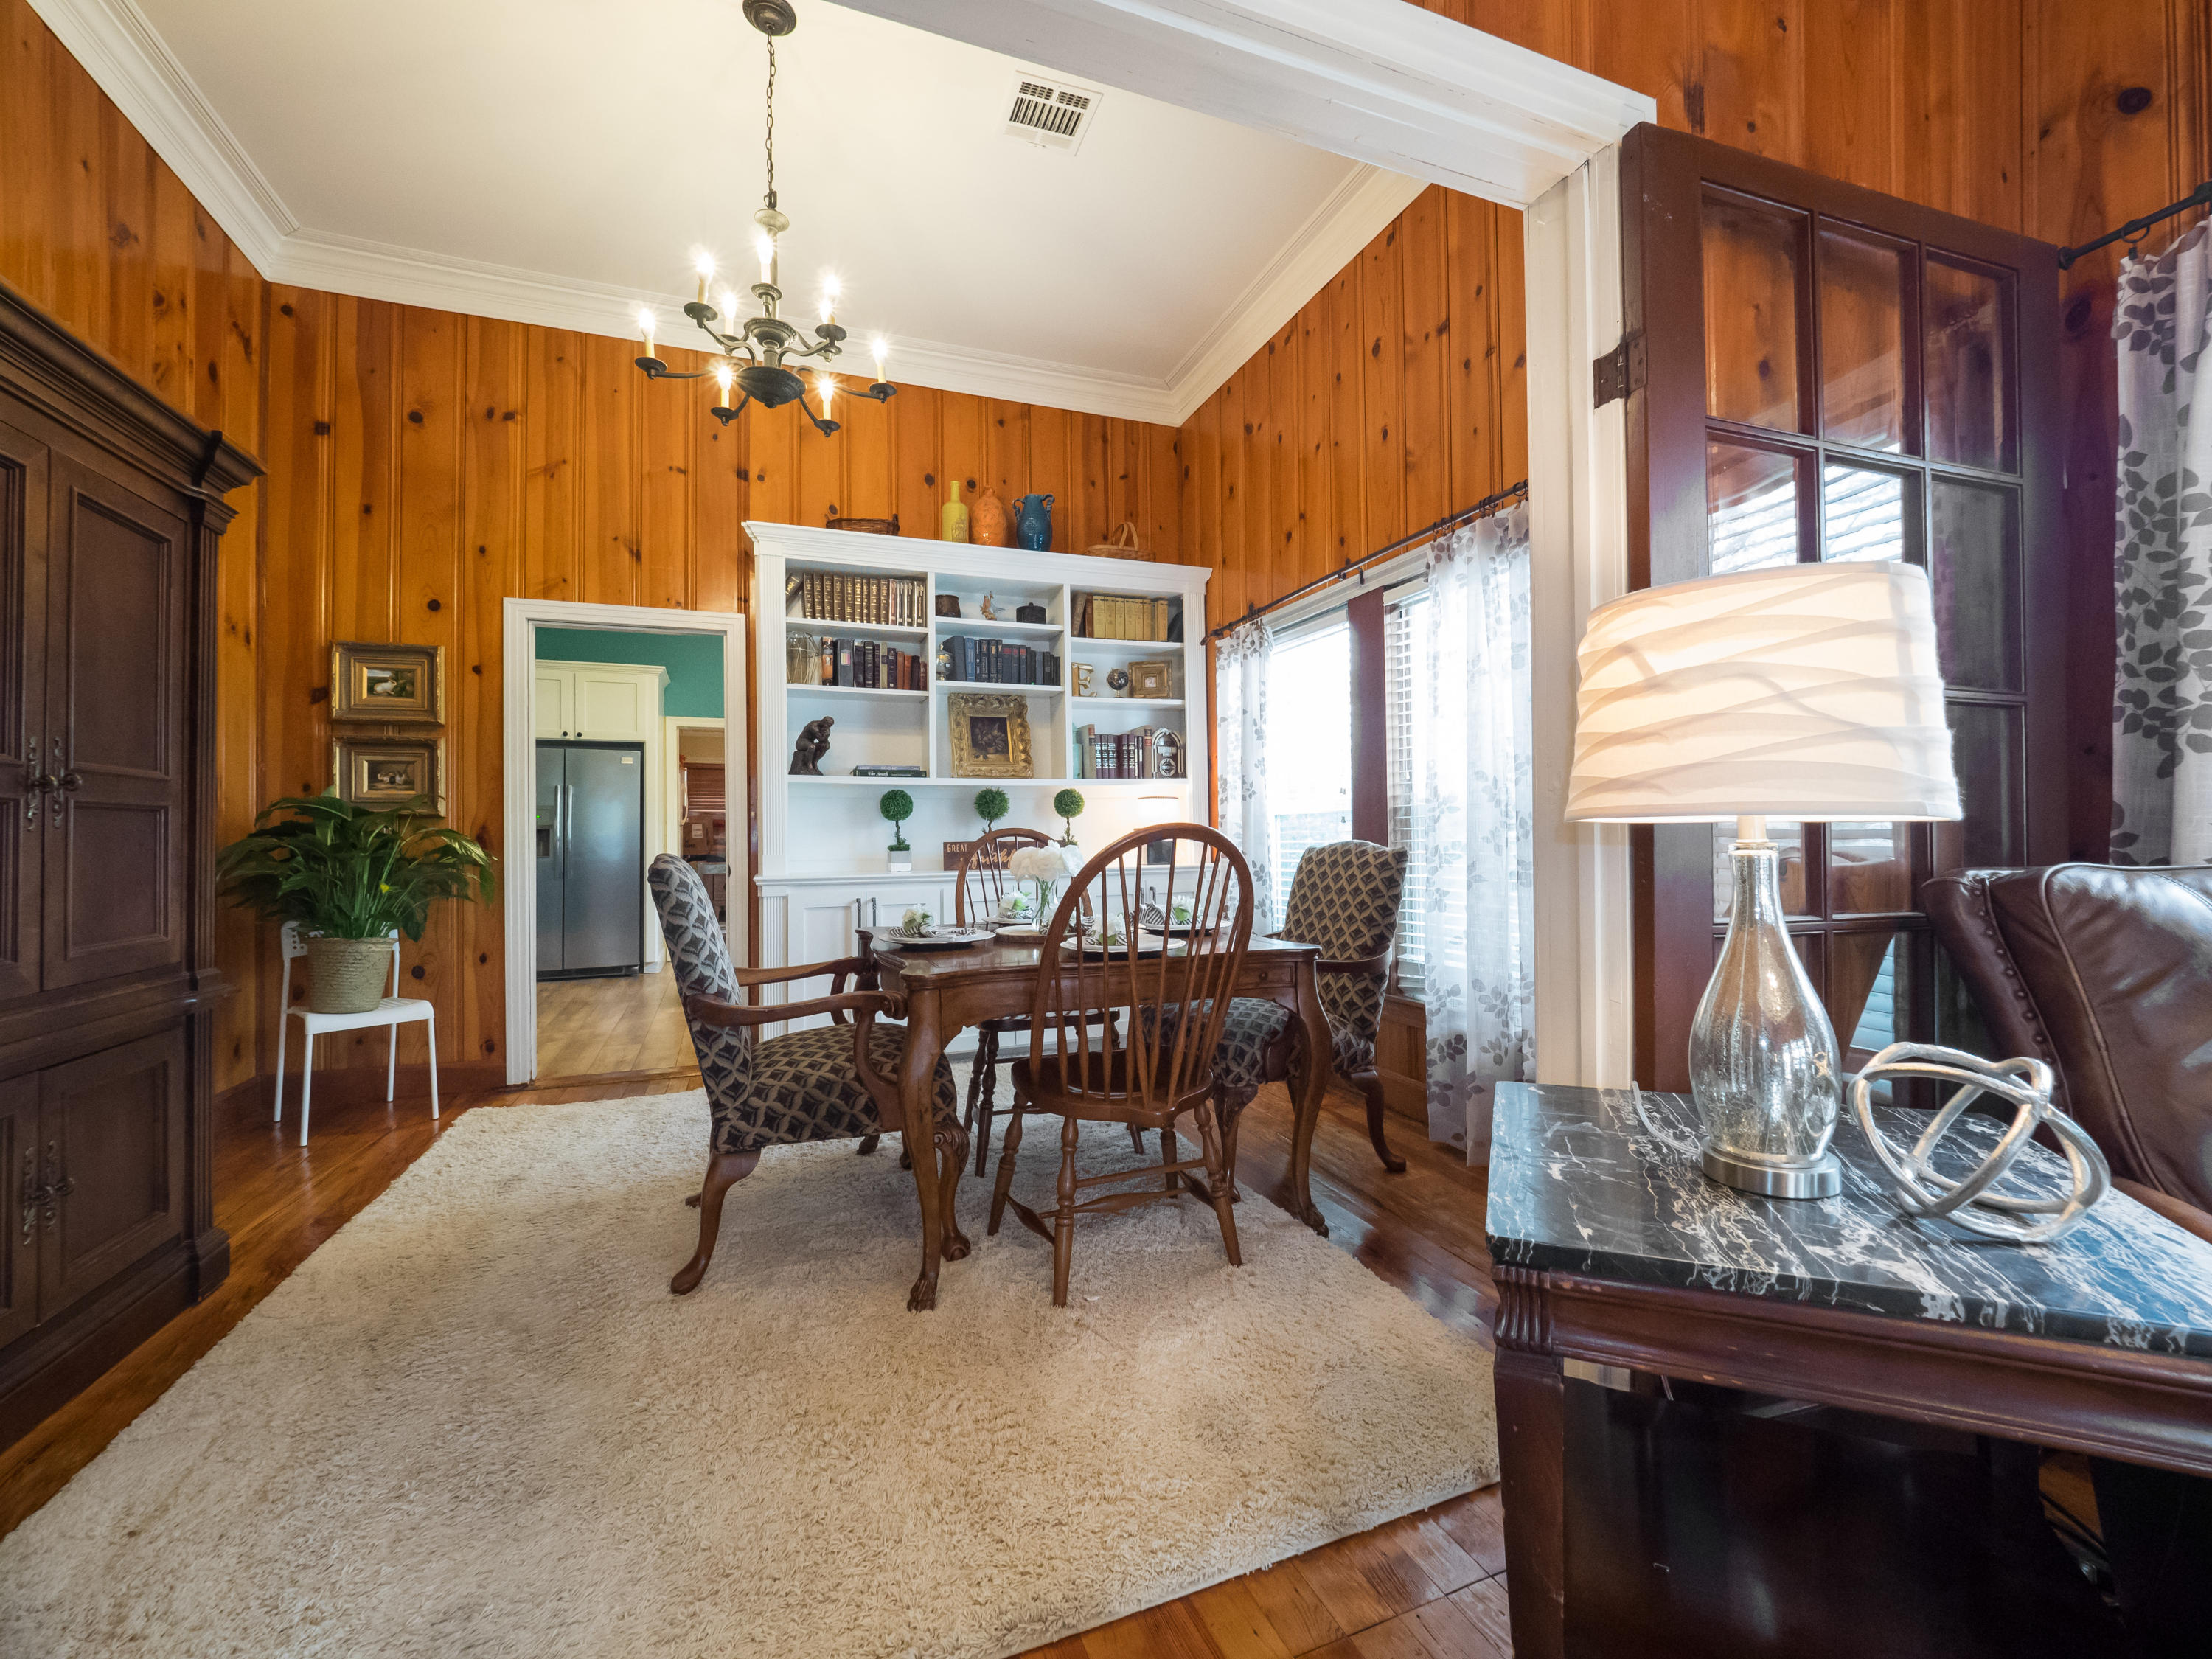 Pitkin home for sale, 186 Railroad St, Pitkin LA - $149,900